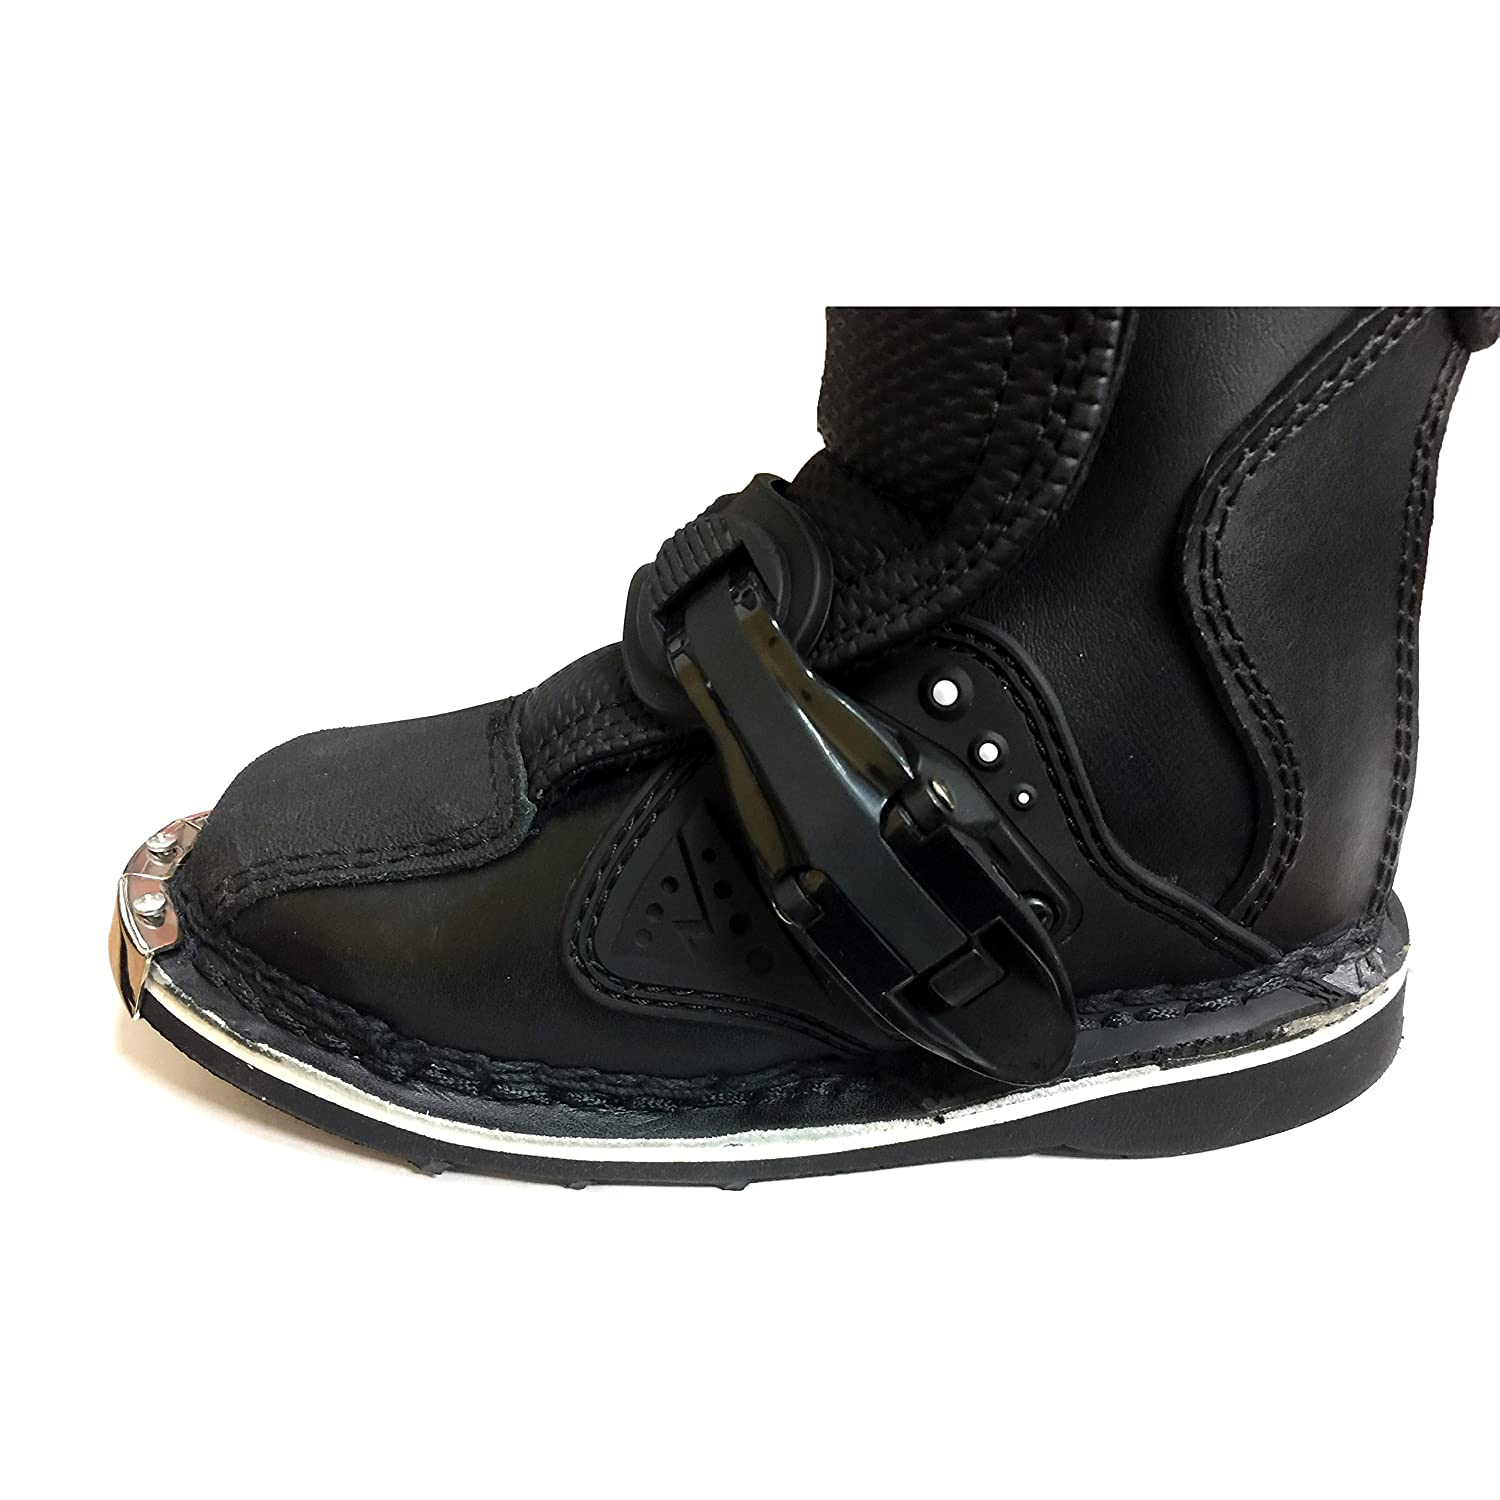 Fly Racing 363-56096 Boots 4370-0110